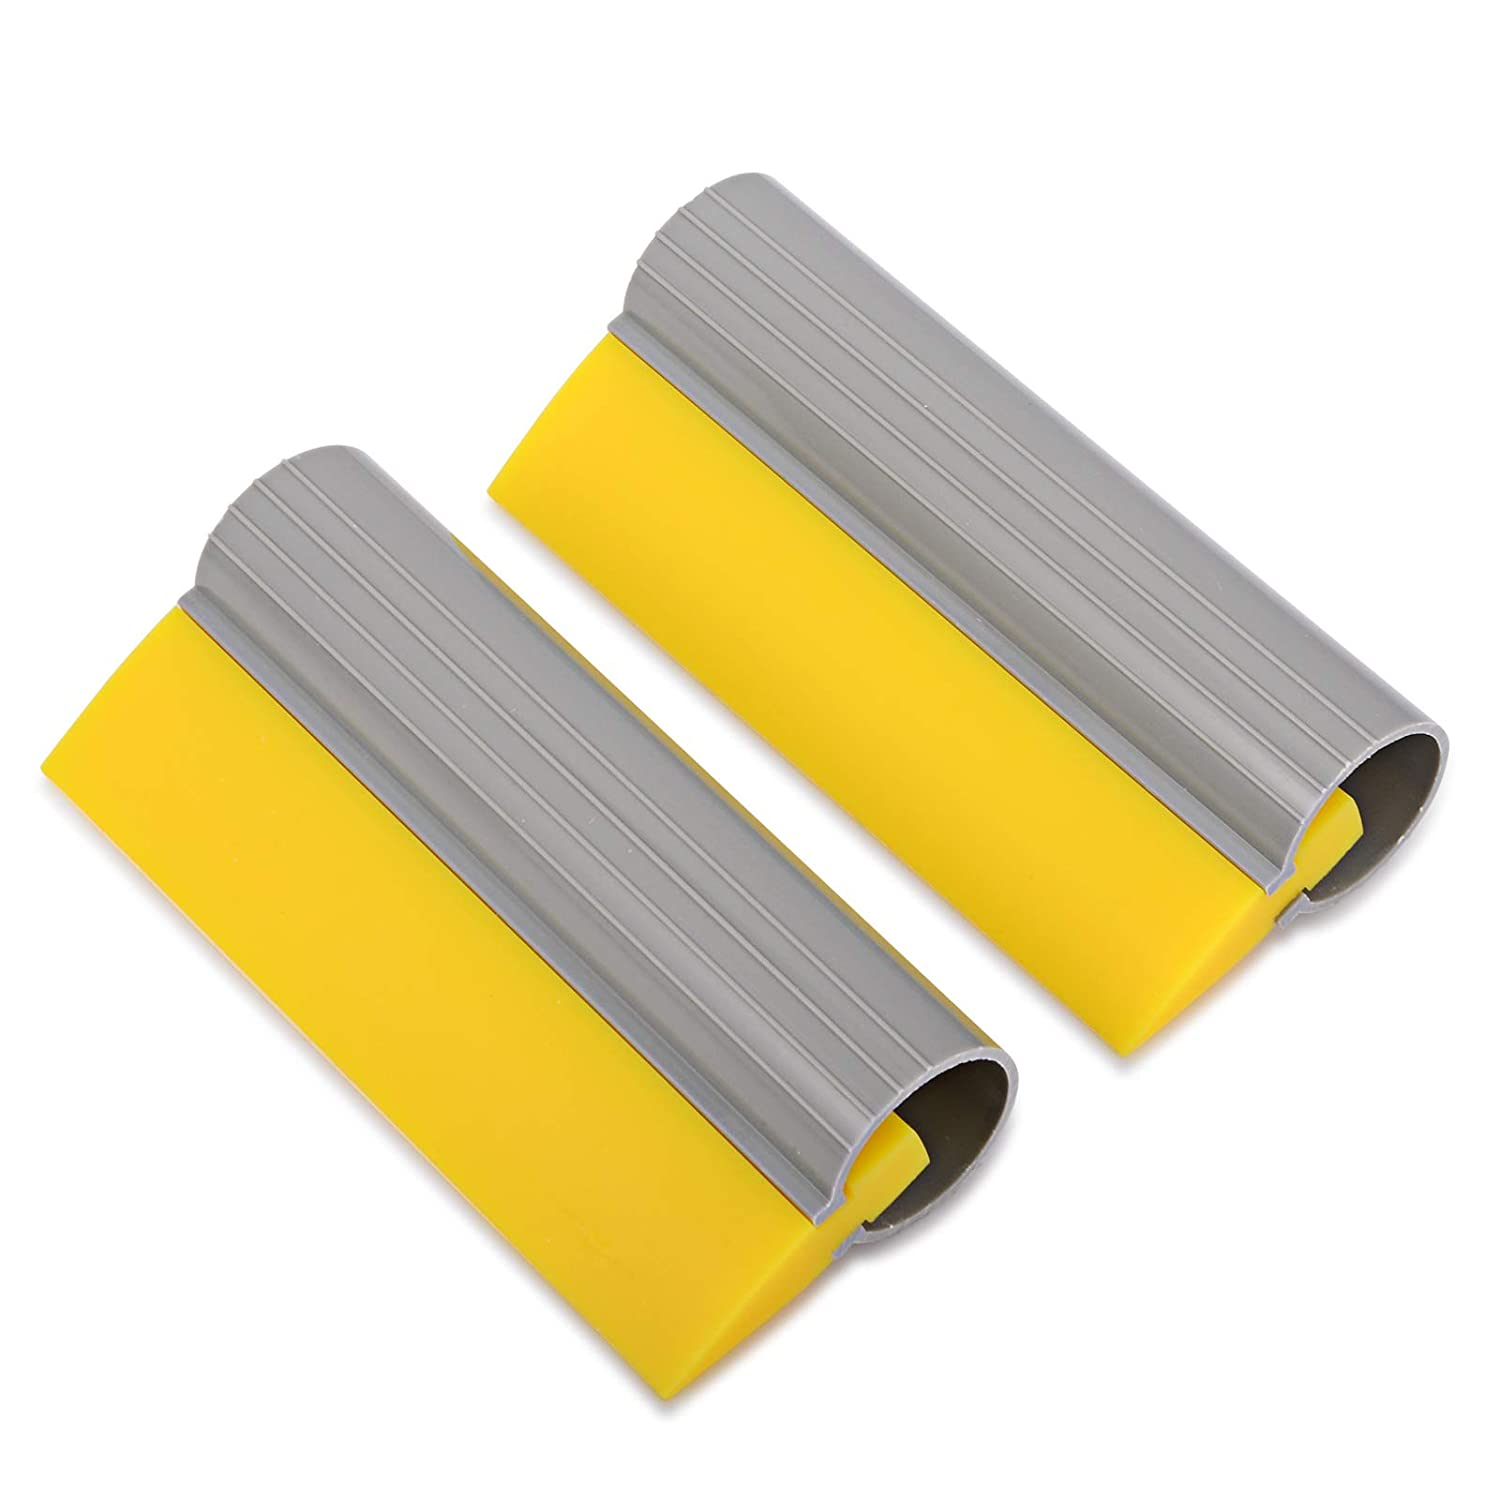 Pack of 2 WINJUN Window Film Installing Soft Rubber Blade Squeegee with Non-Slip Tube Handle for Car Vinyl Wraps and Household Water Clean